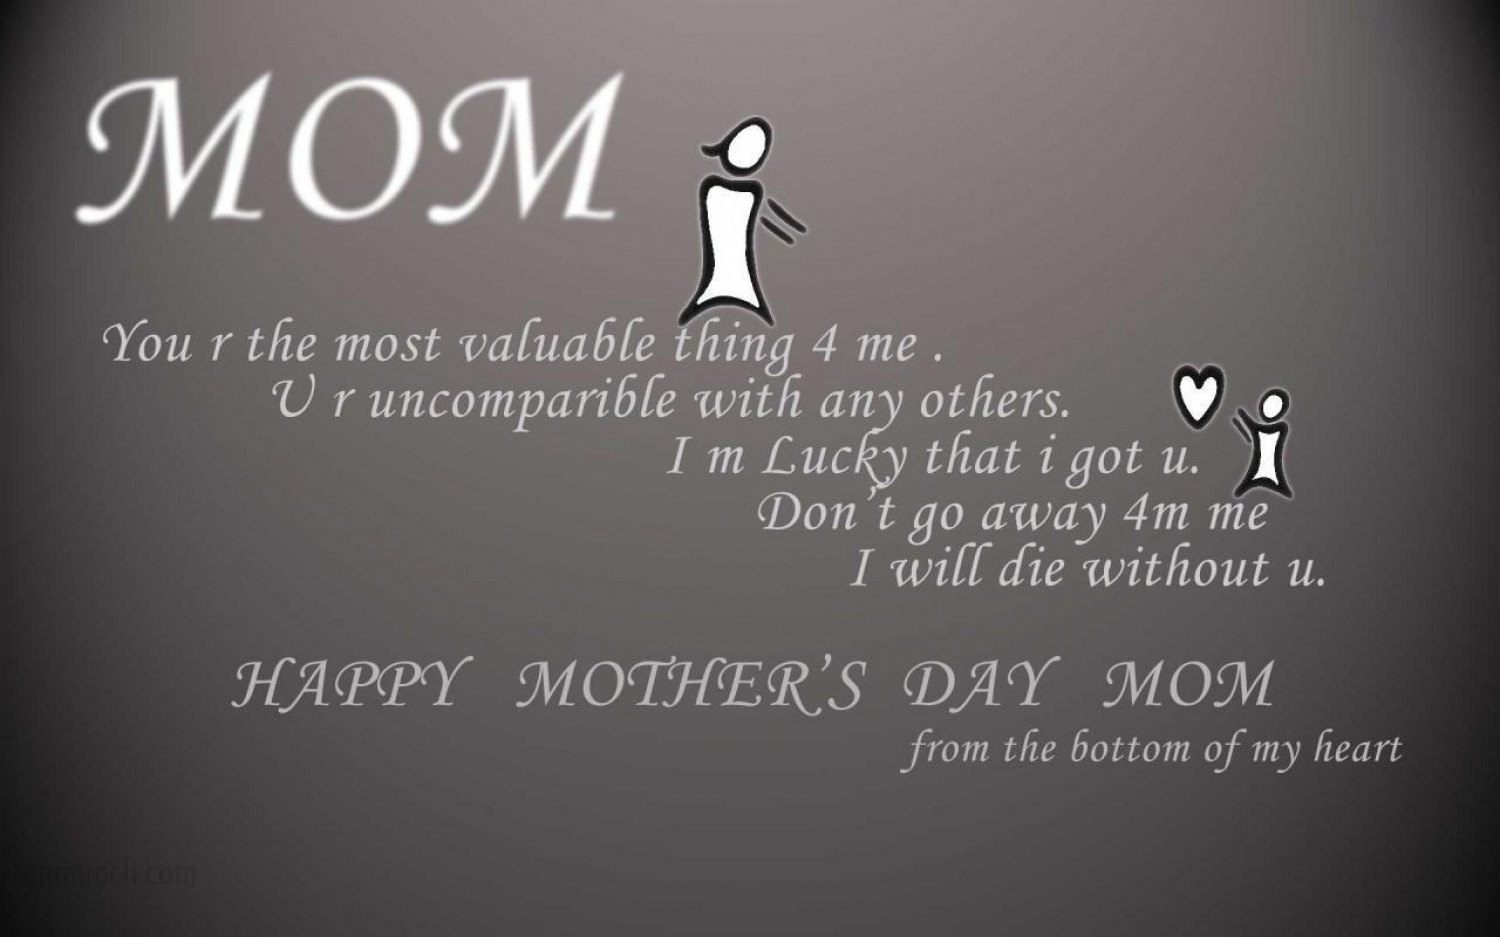 Happy Mothers Day Infographic